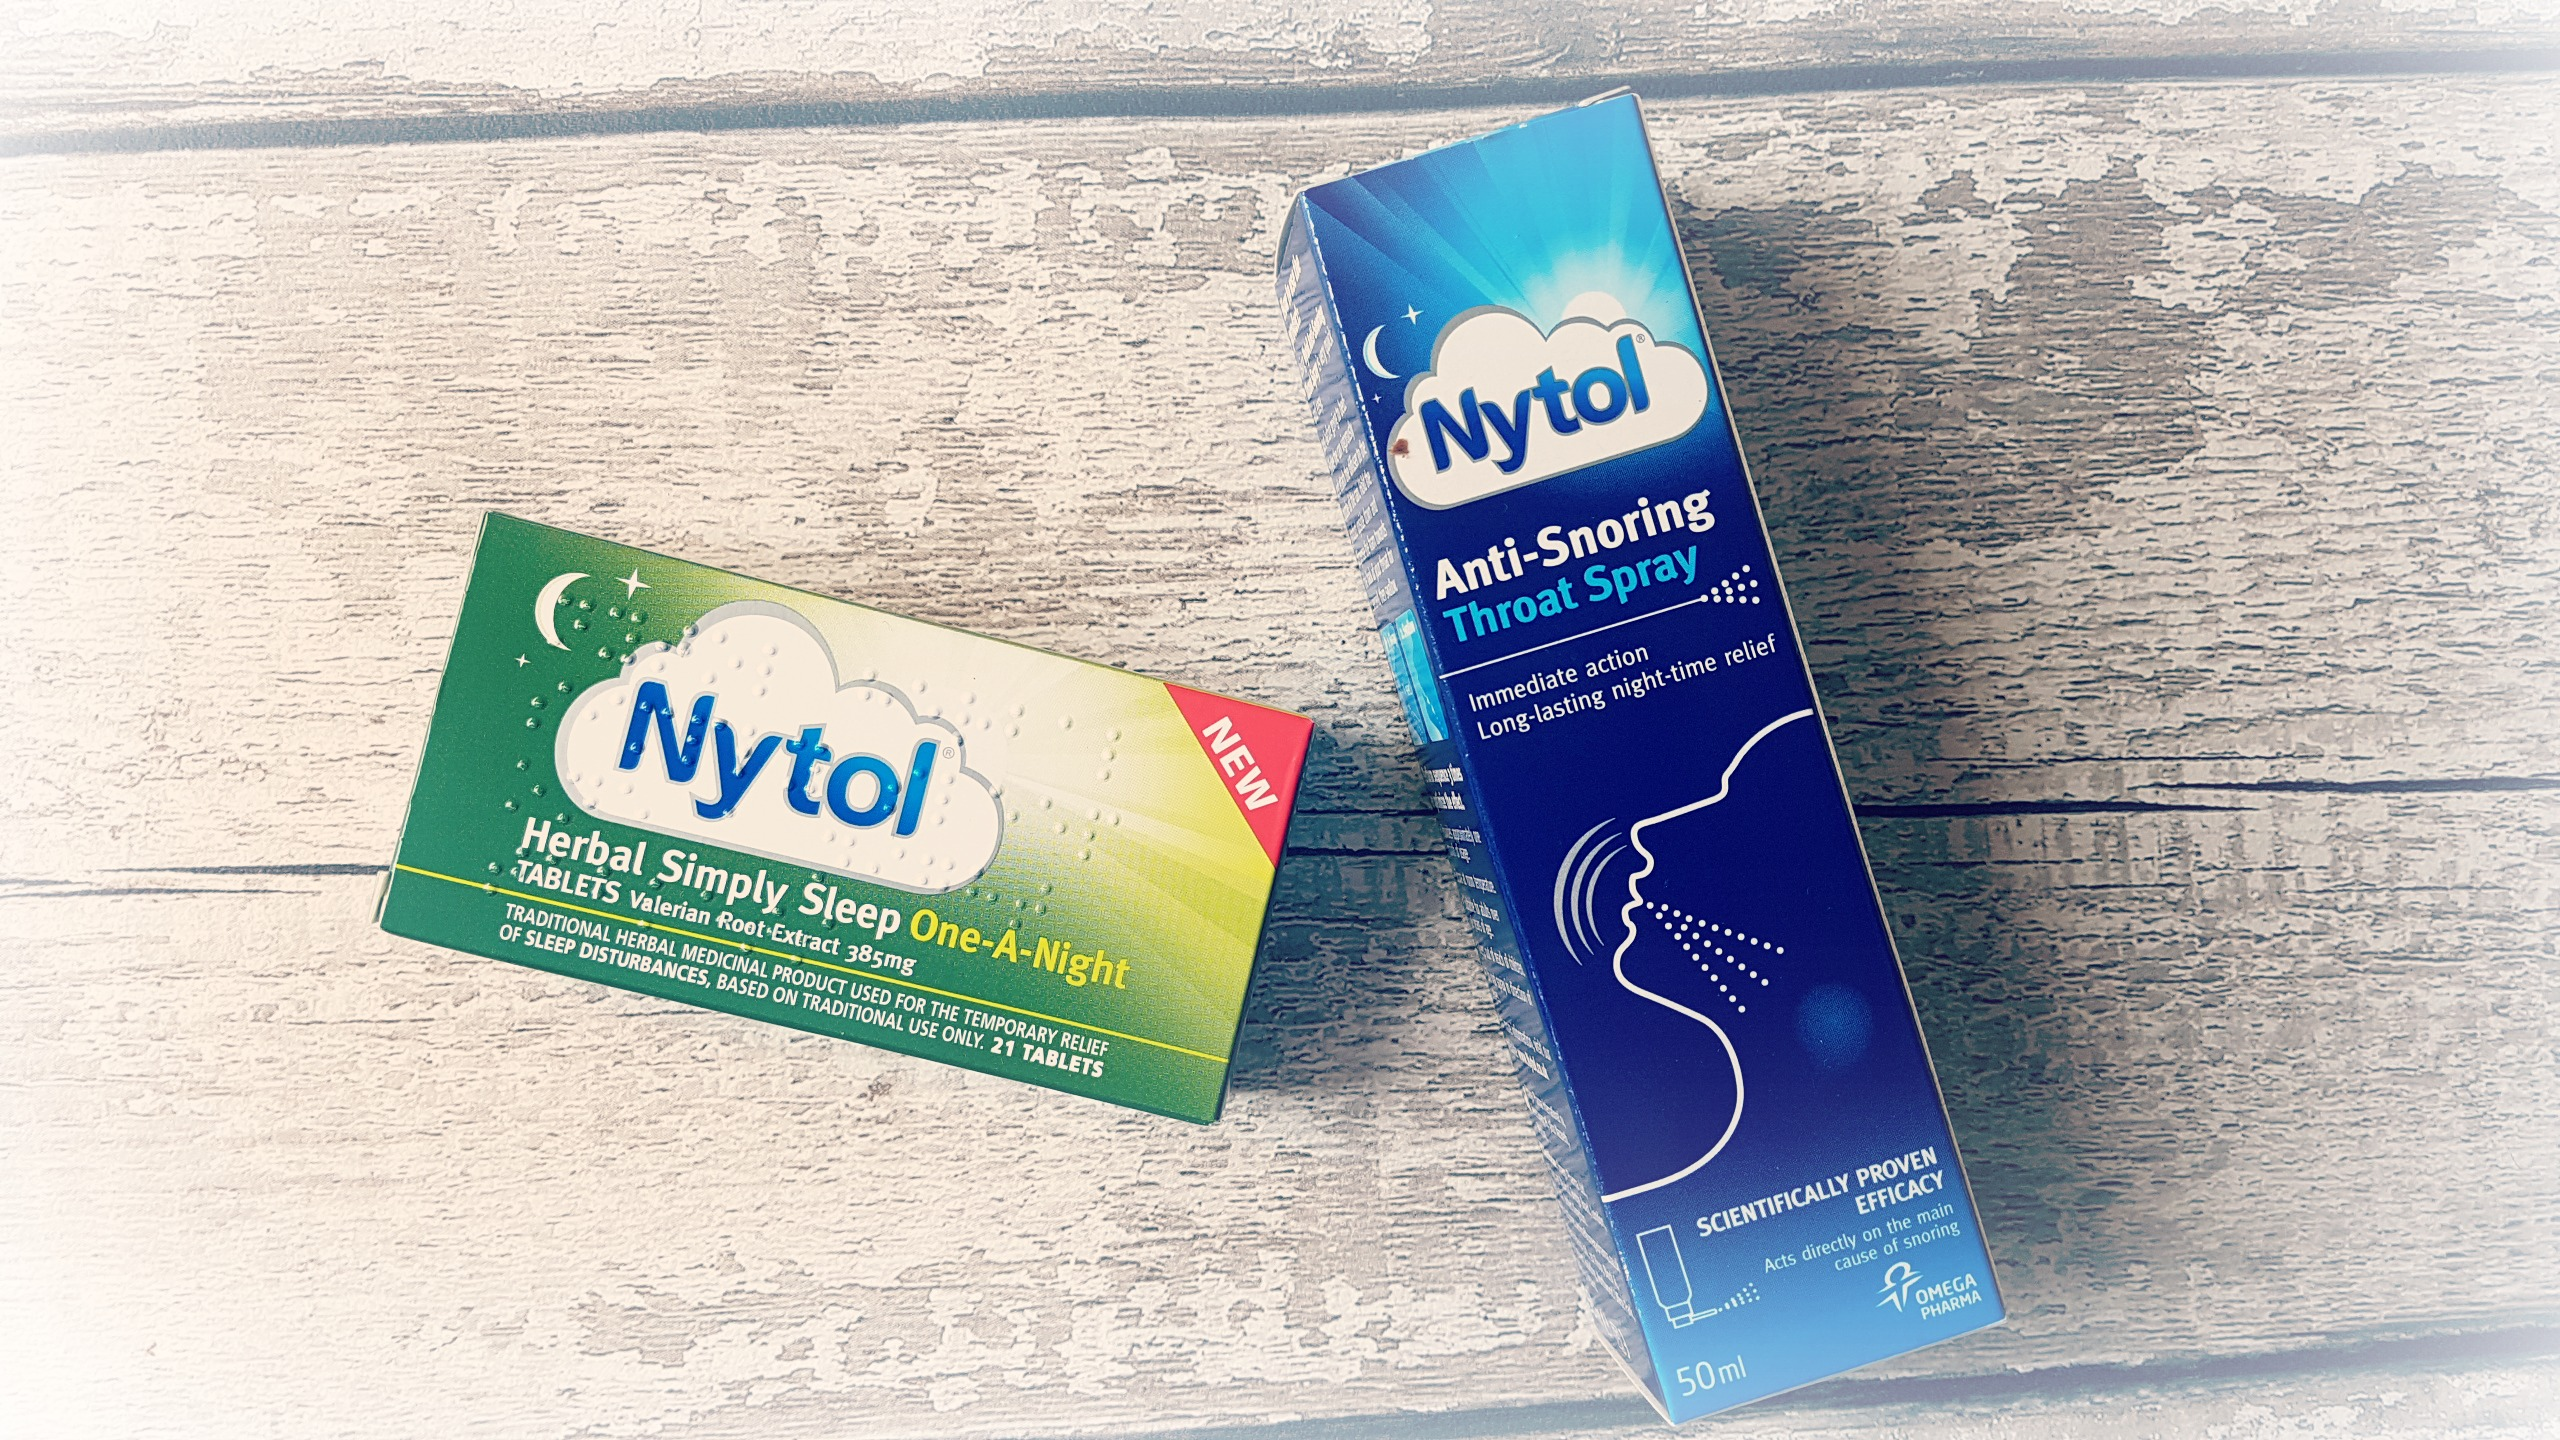 a box of nytol one a night sleep tablets and nytol anti-snoring throat spray